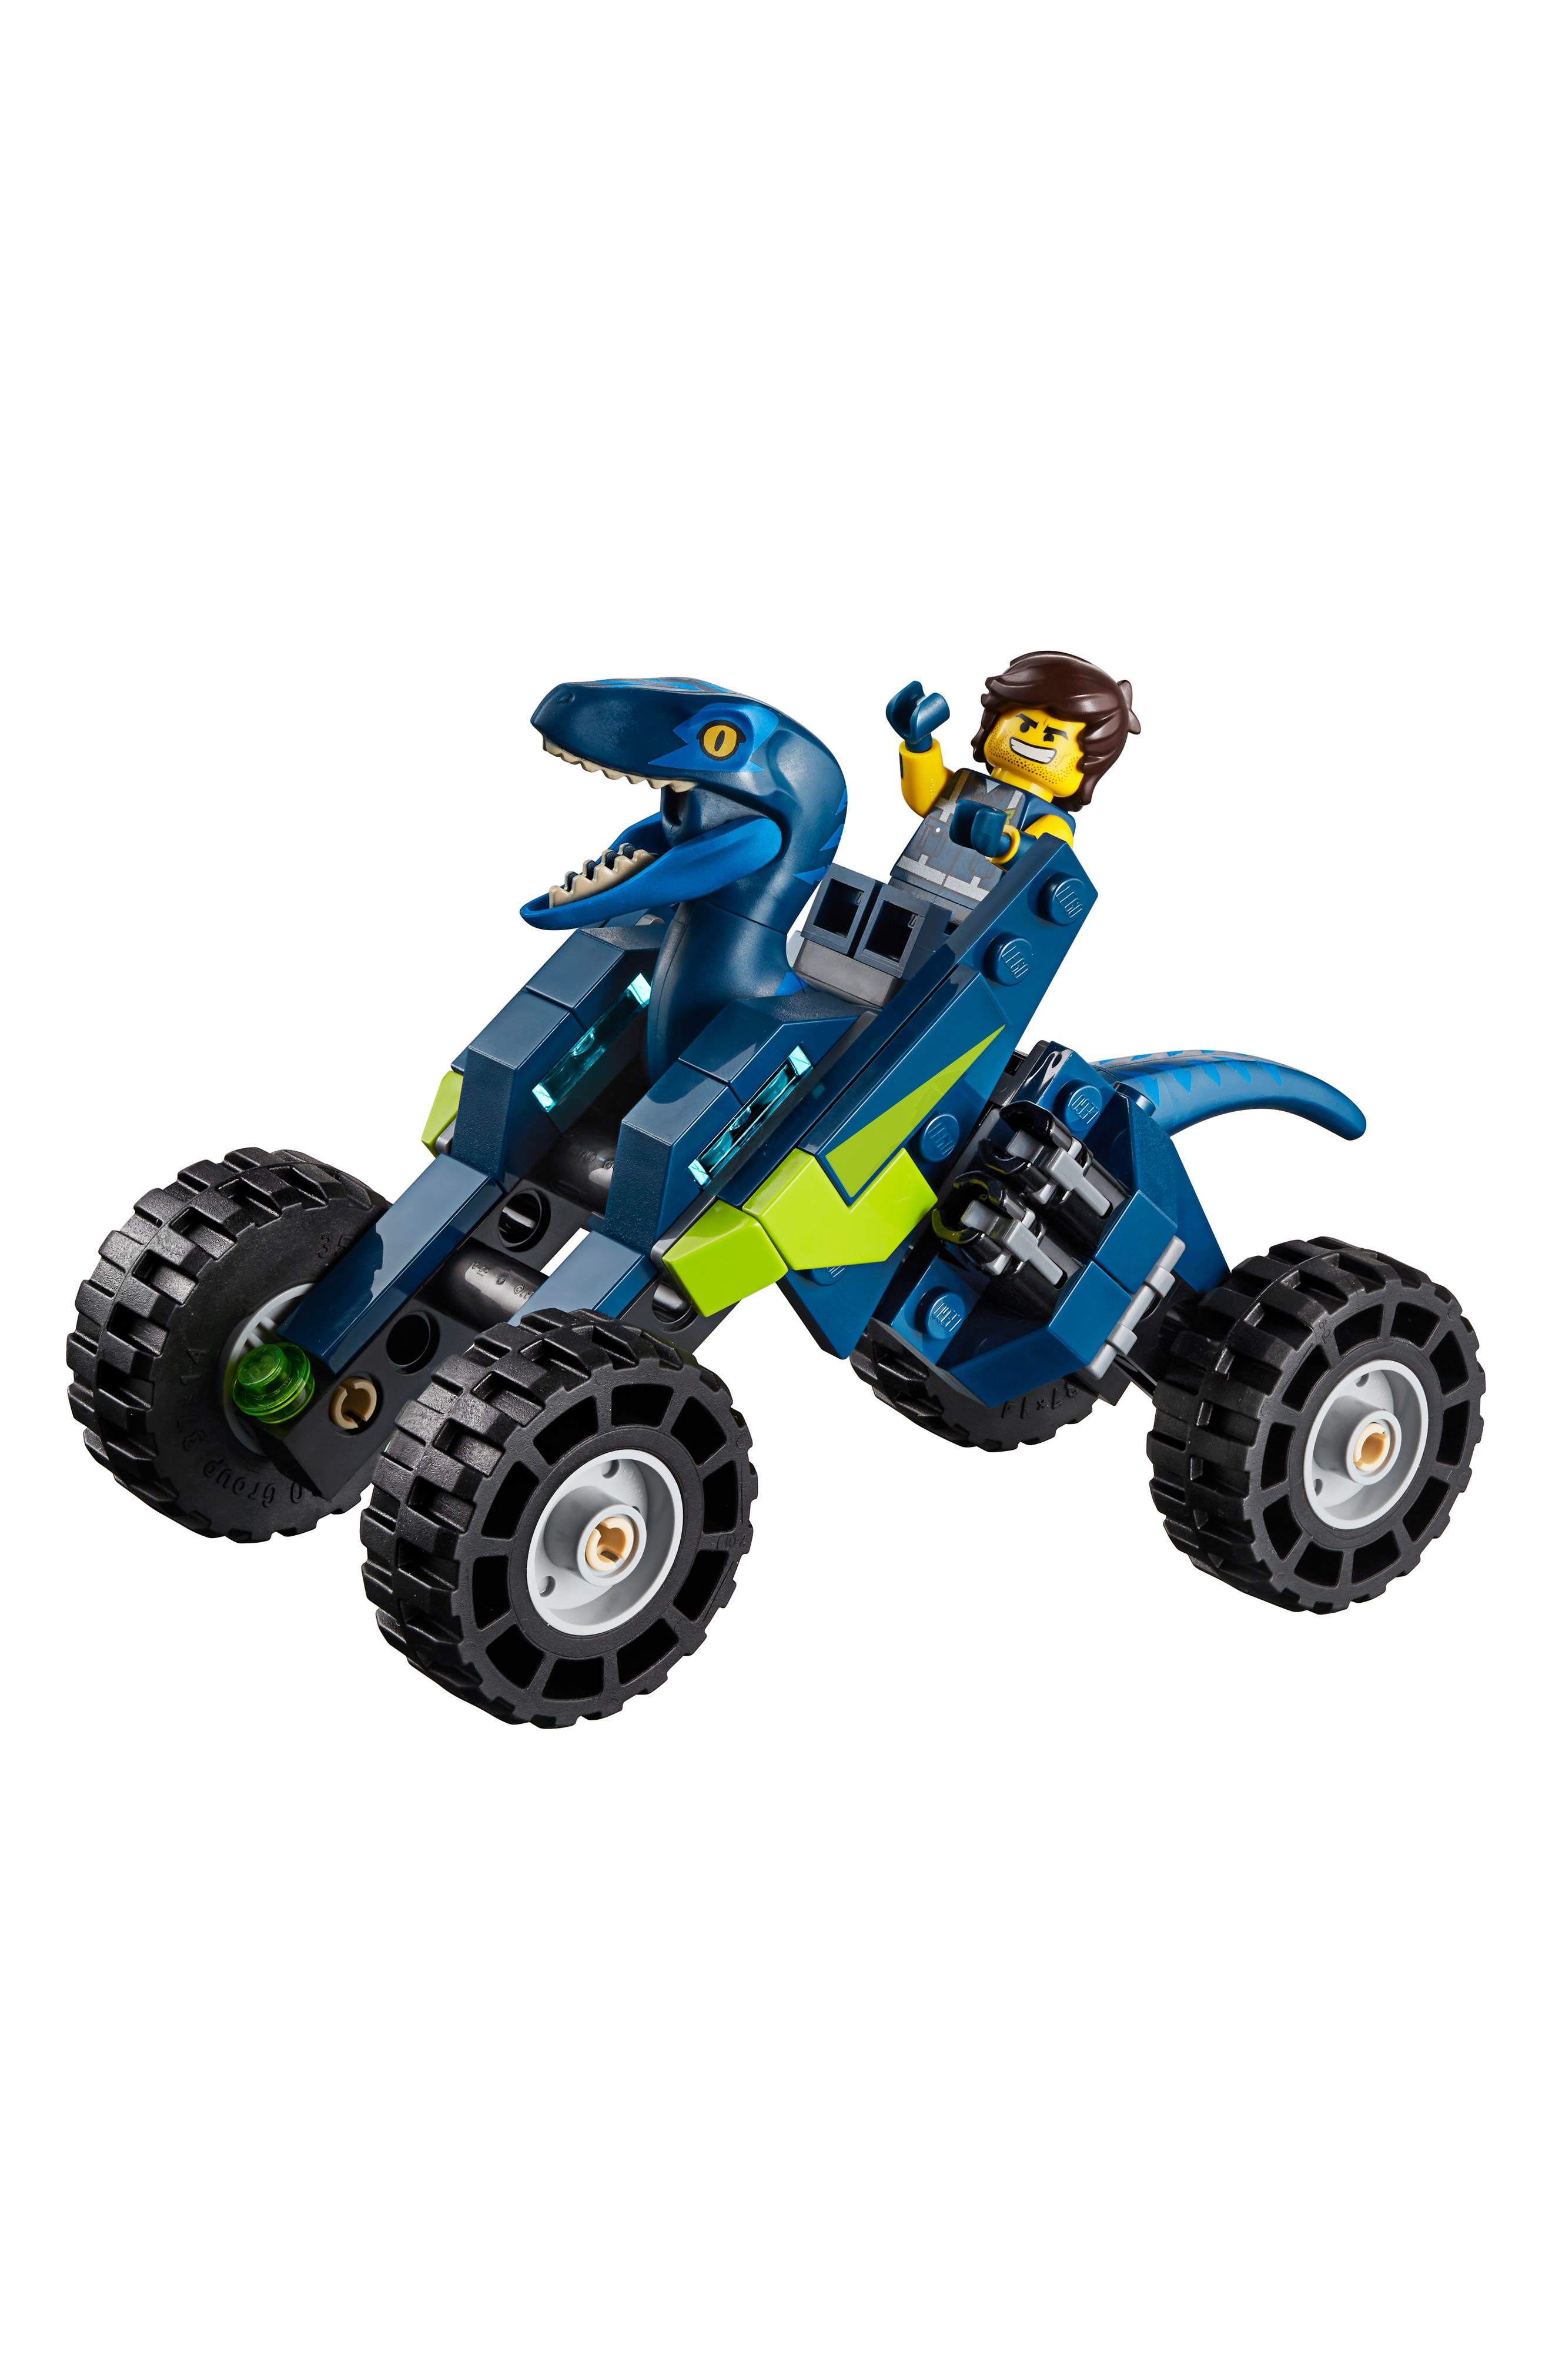 LEGO<SUP>®</SUP>,                             The LEGO<sup>®</sup> Movie 2 Rex's 3-in-1 Rex-treme Offroader Toy - 70826,                             Alternate thumbnail 4, color,                             960